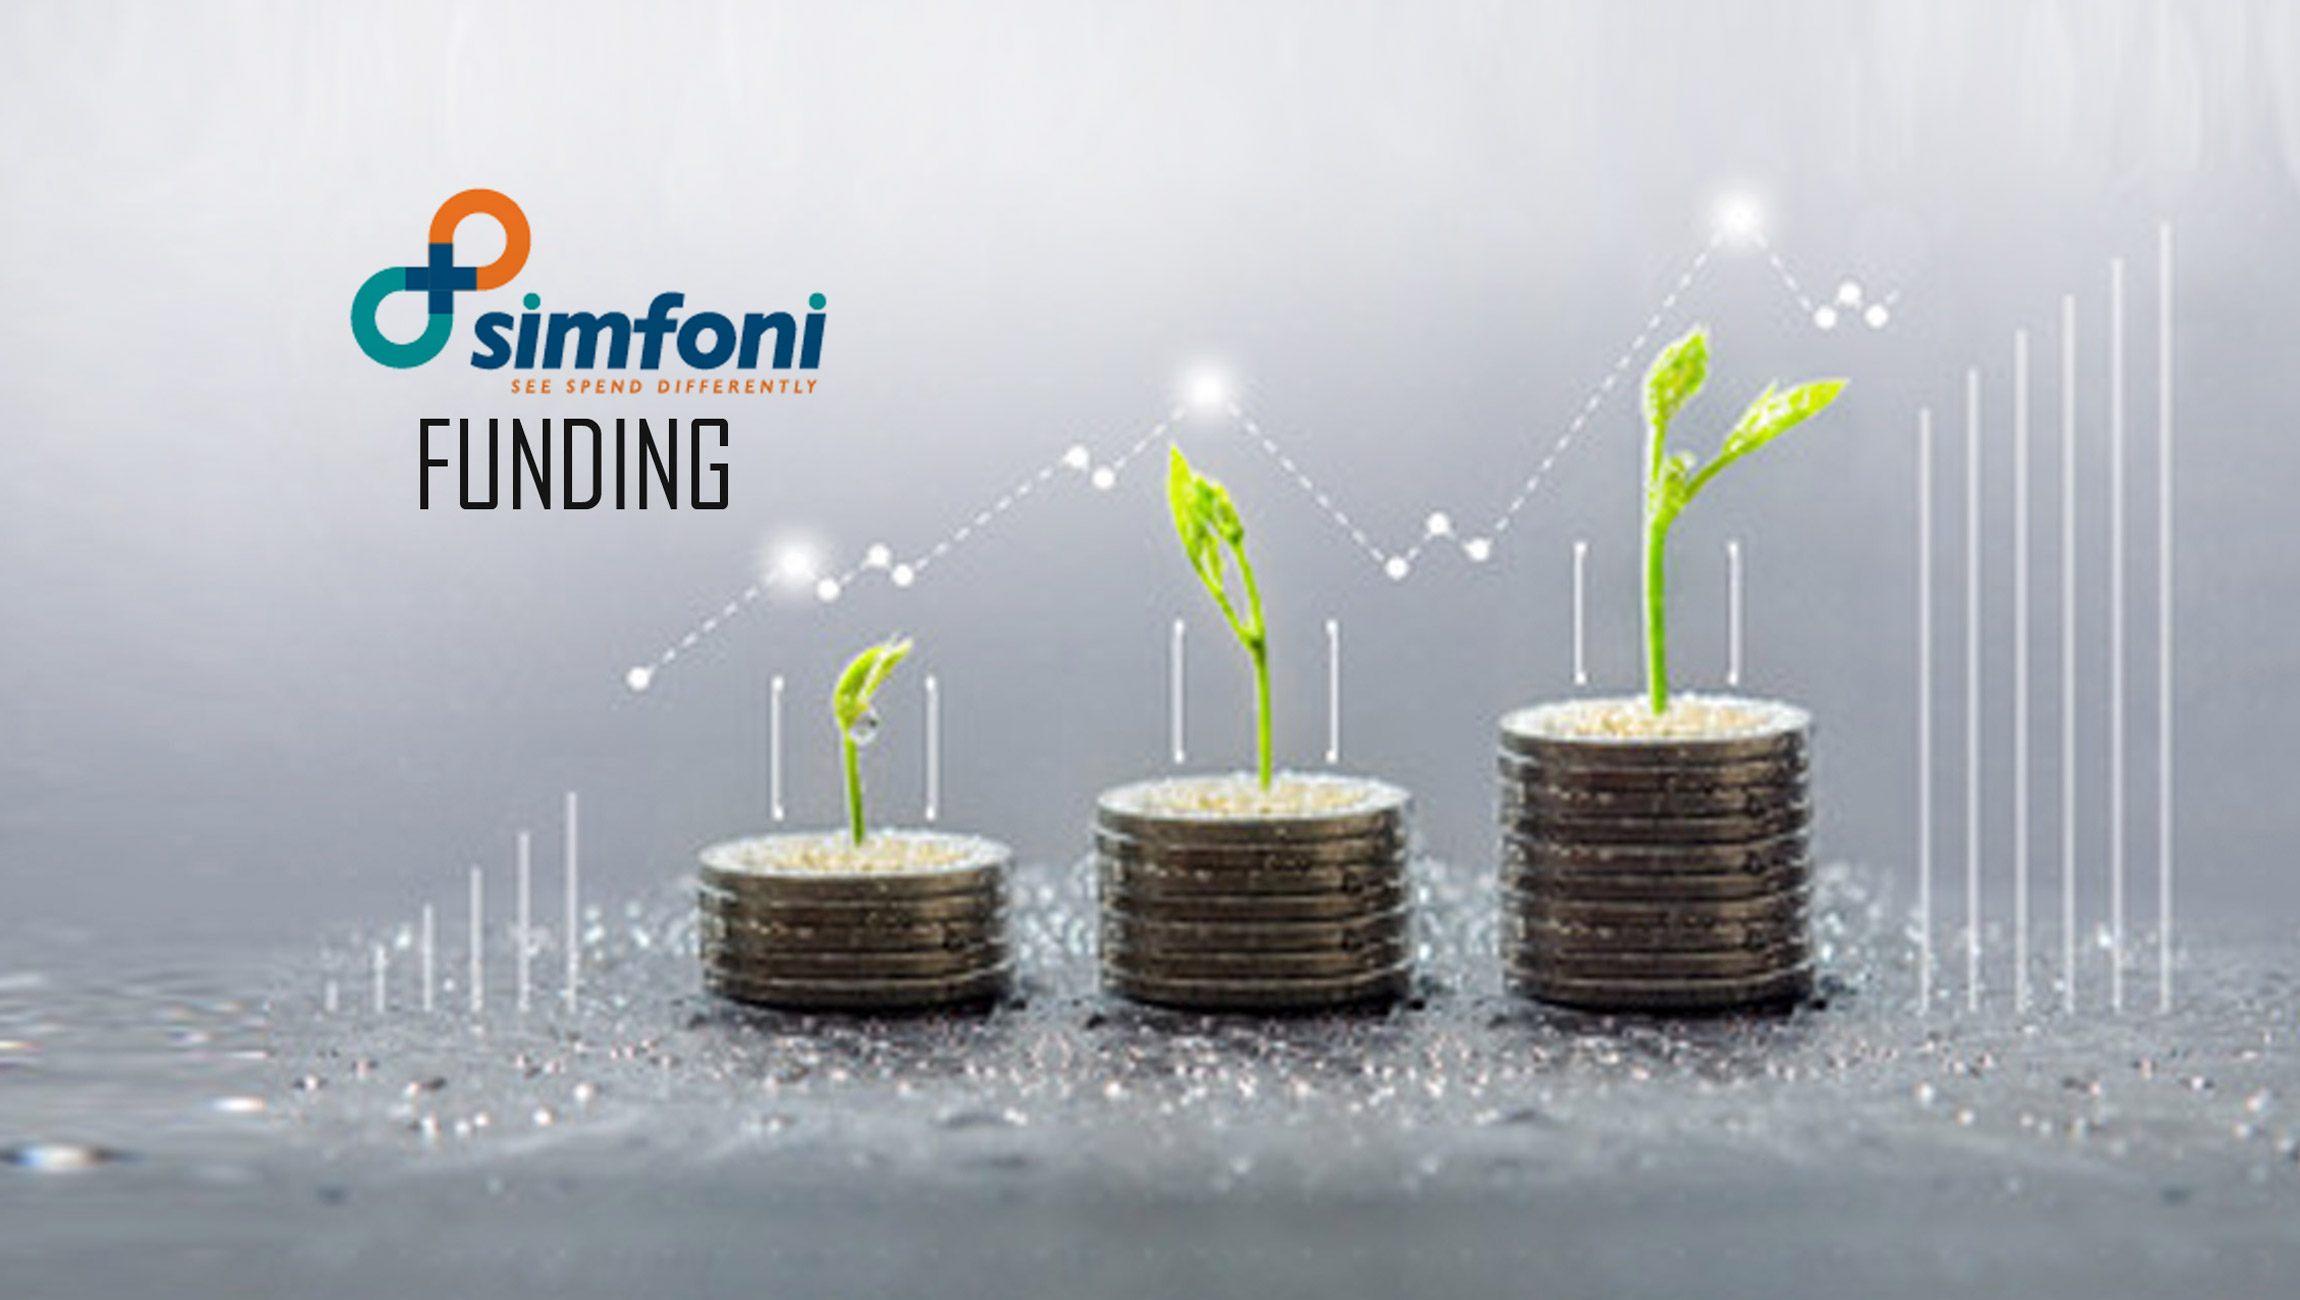 Simfoni-Raises-_15-Million-in-Series-B-Funding-to-Support-Rapid-Growth-and-Expansion-of-Next-Generation-Procurement-Platform